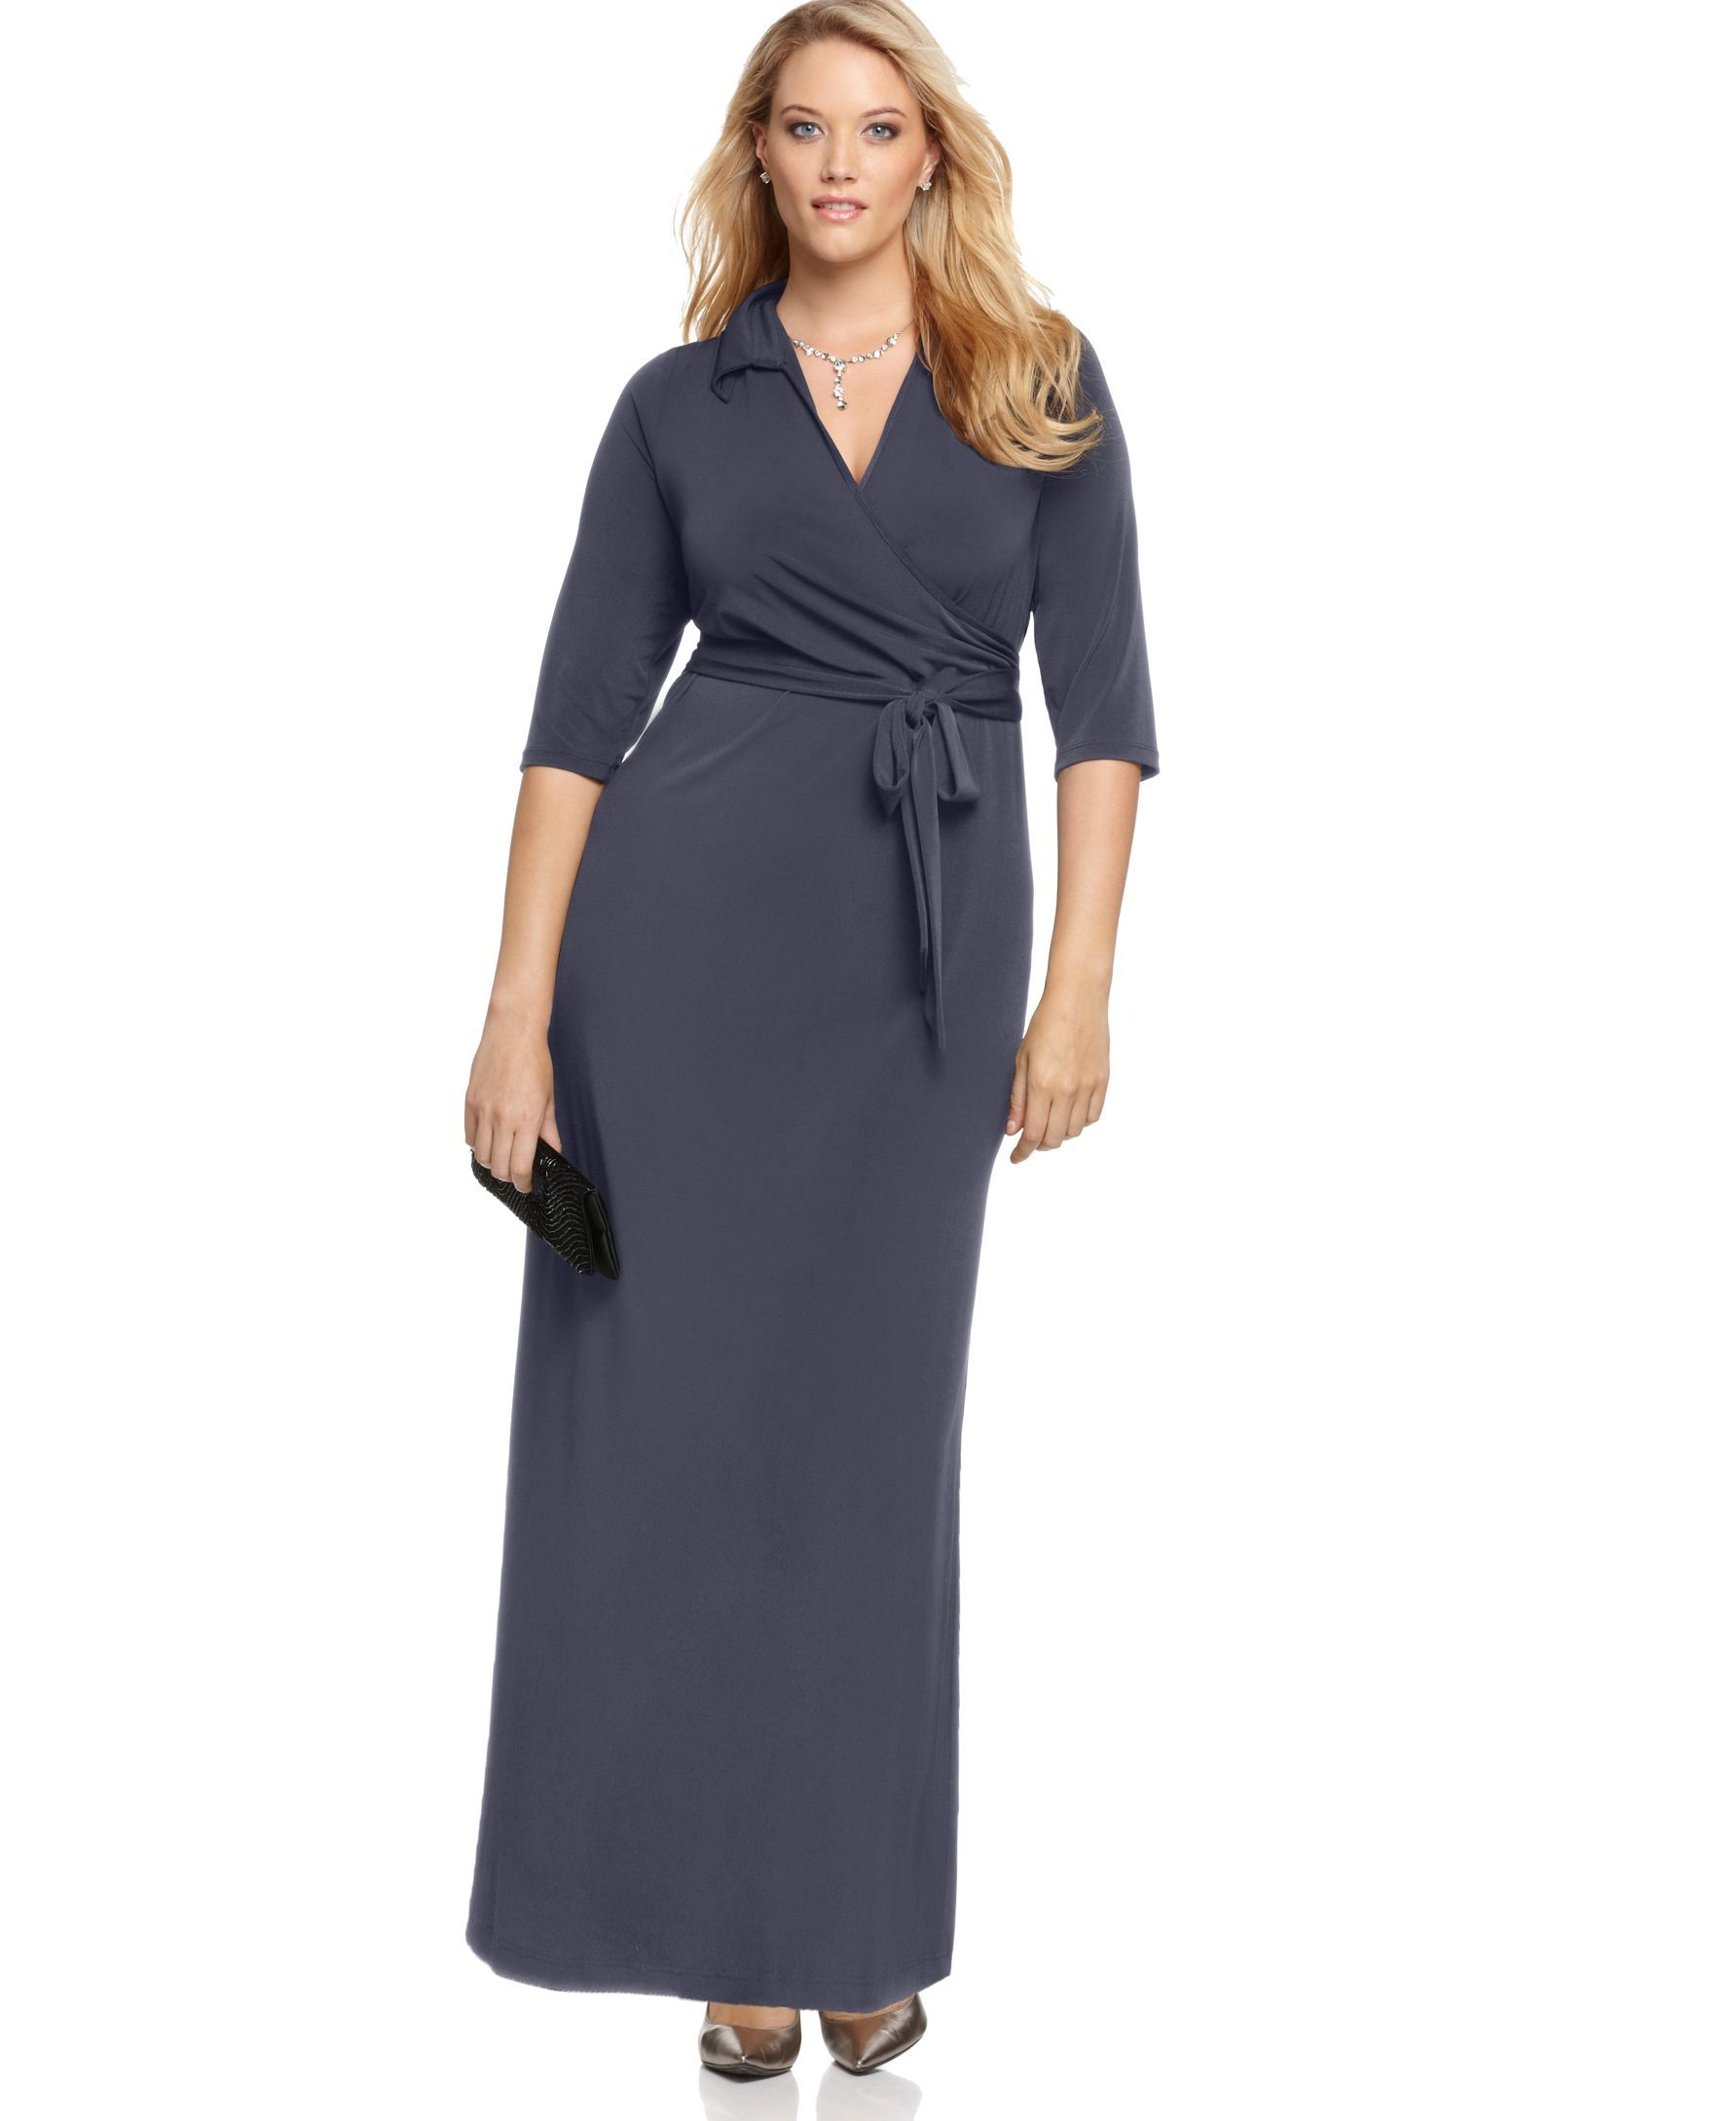 87b0c82757e NY Collection Plus Size Faux-Wrap Maxi Dress - Plus Size Sale   Clearance - Plus  Sizes - Macy s